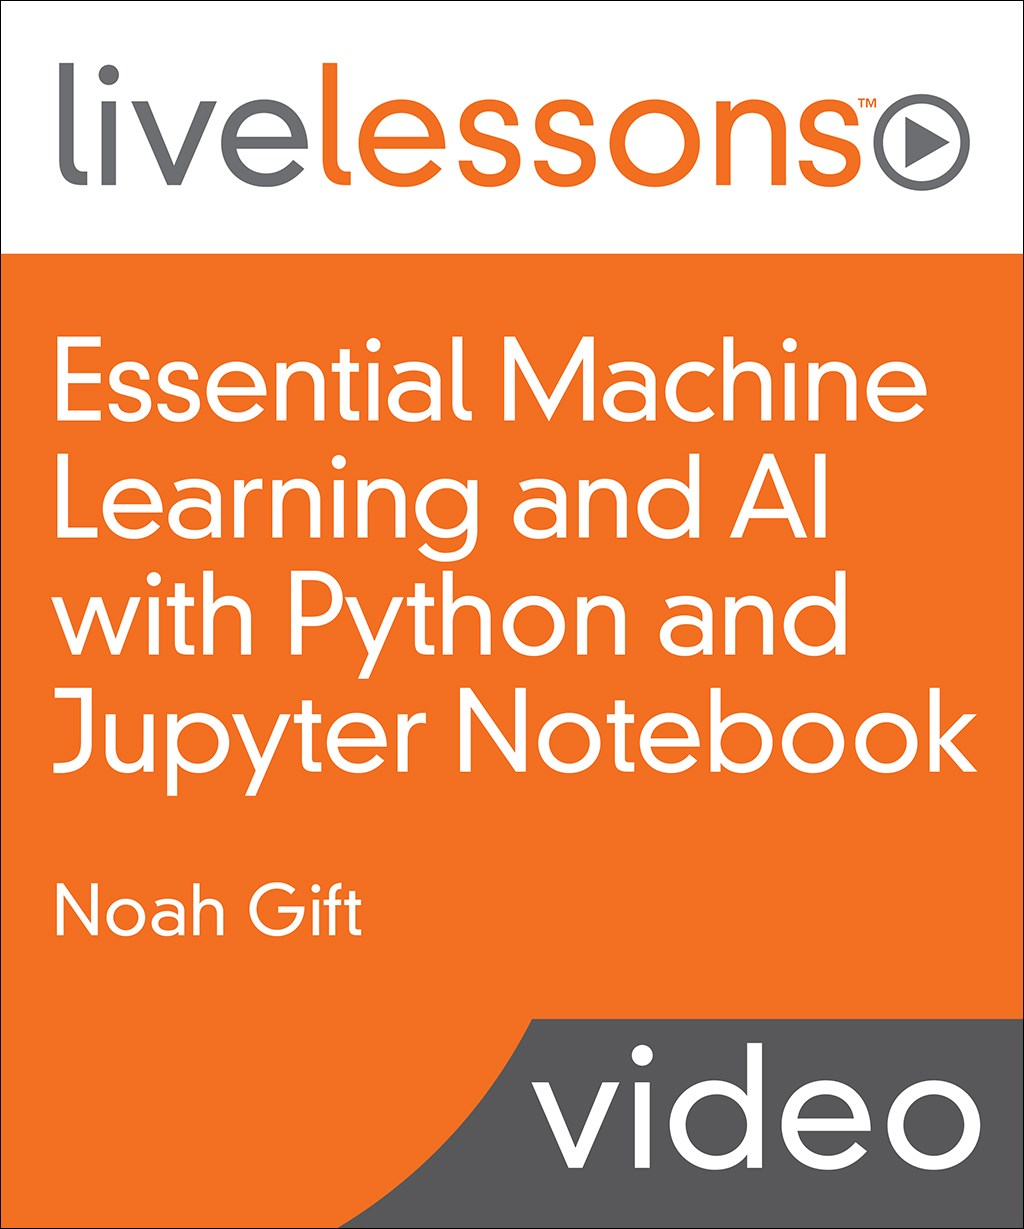 Essential Machine Learning and AI with Python and Jupyter Notebook LiveLessons